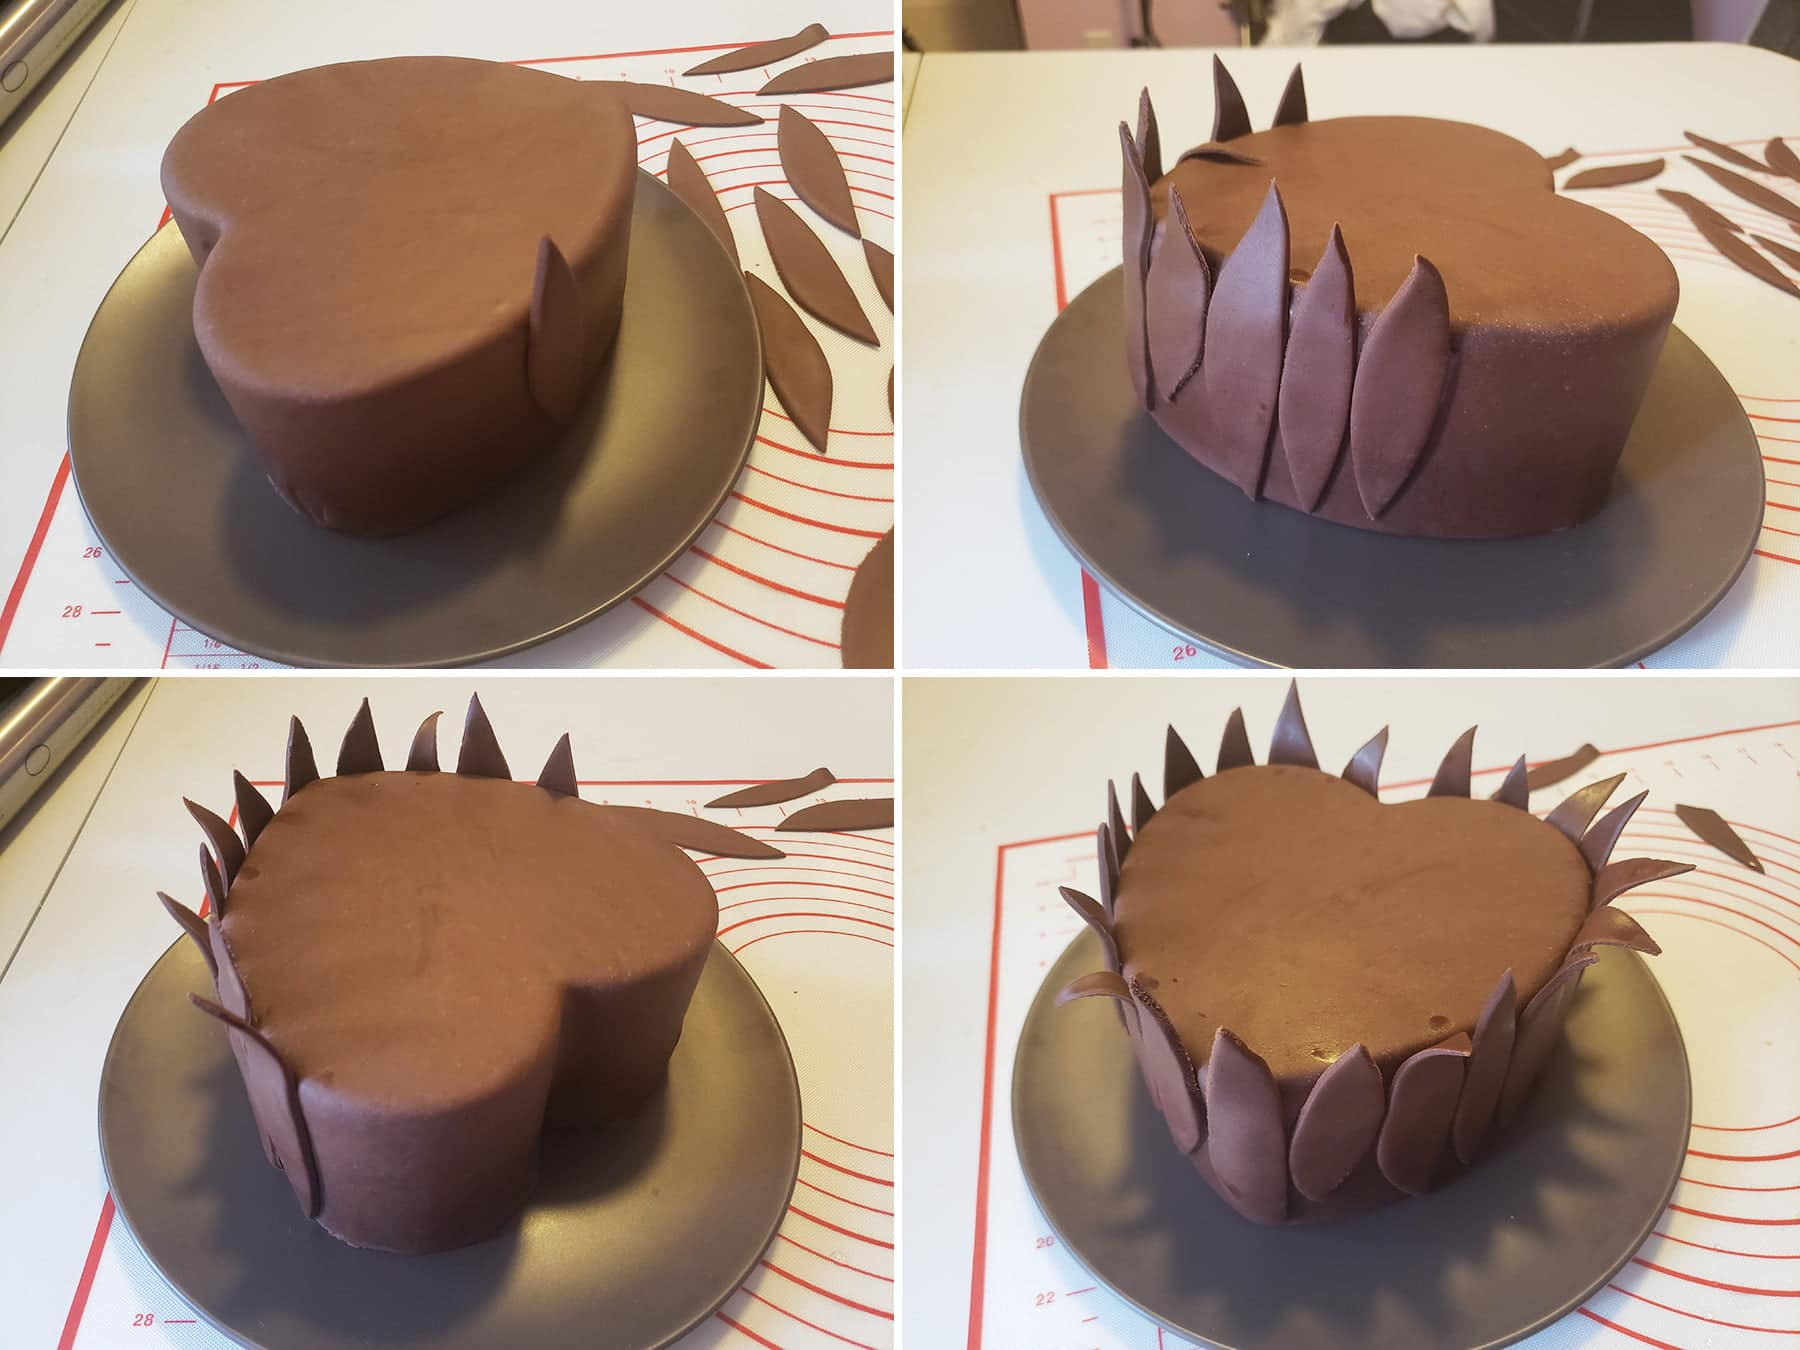 A 4 part compilation image , demonstrating how to attach the first round of chocolate leaves to the cake.